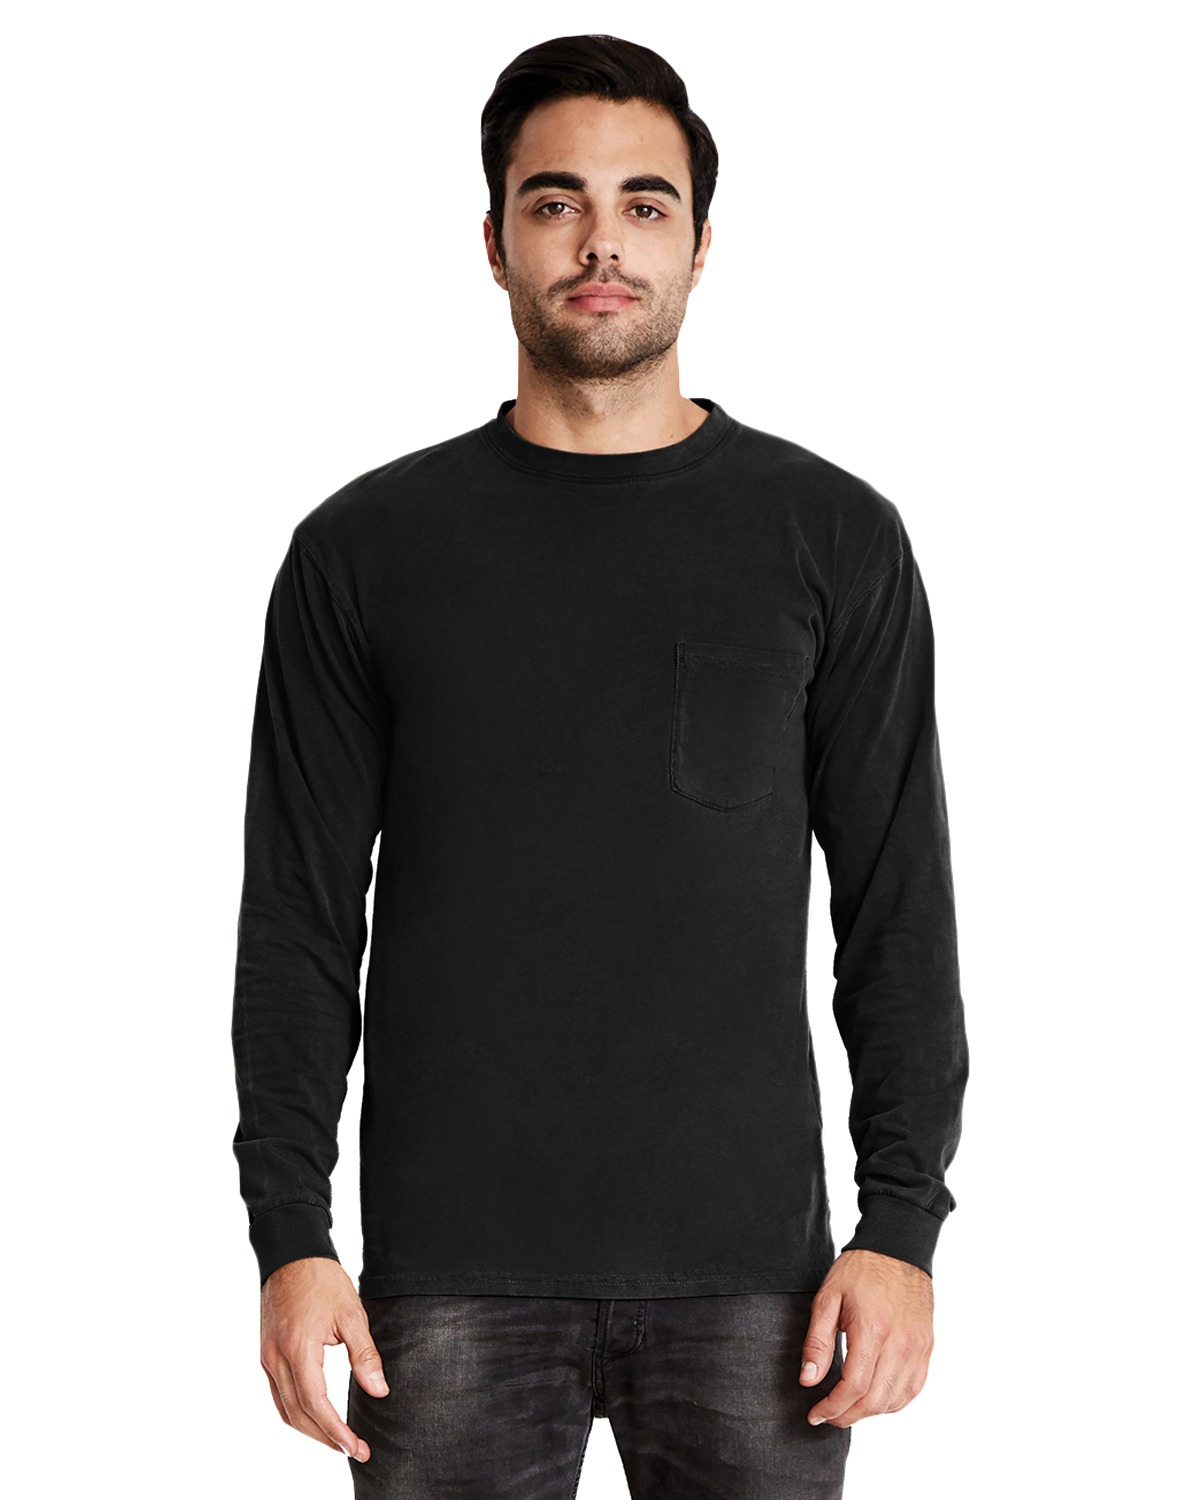 3655e9889148f1 Next Level Apparel 7451 - Adult Inspired Dye Long-Sleeve Crew with ...